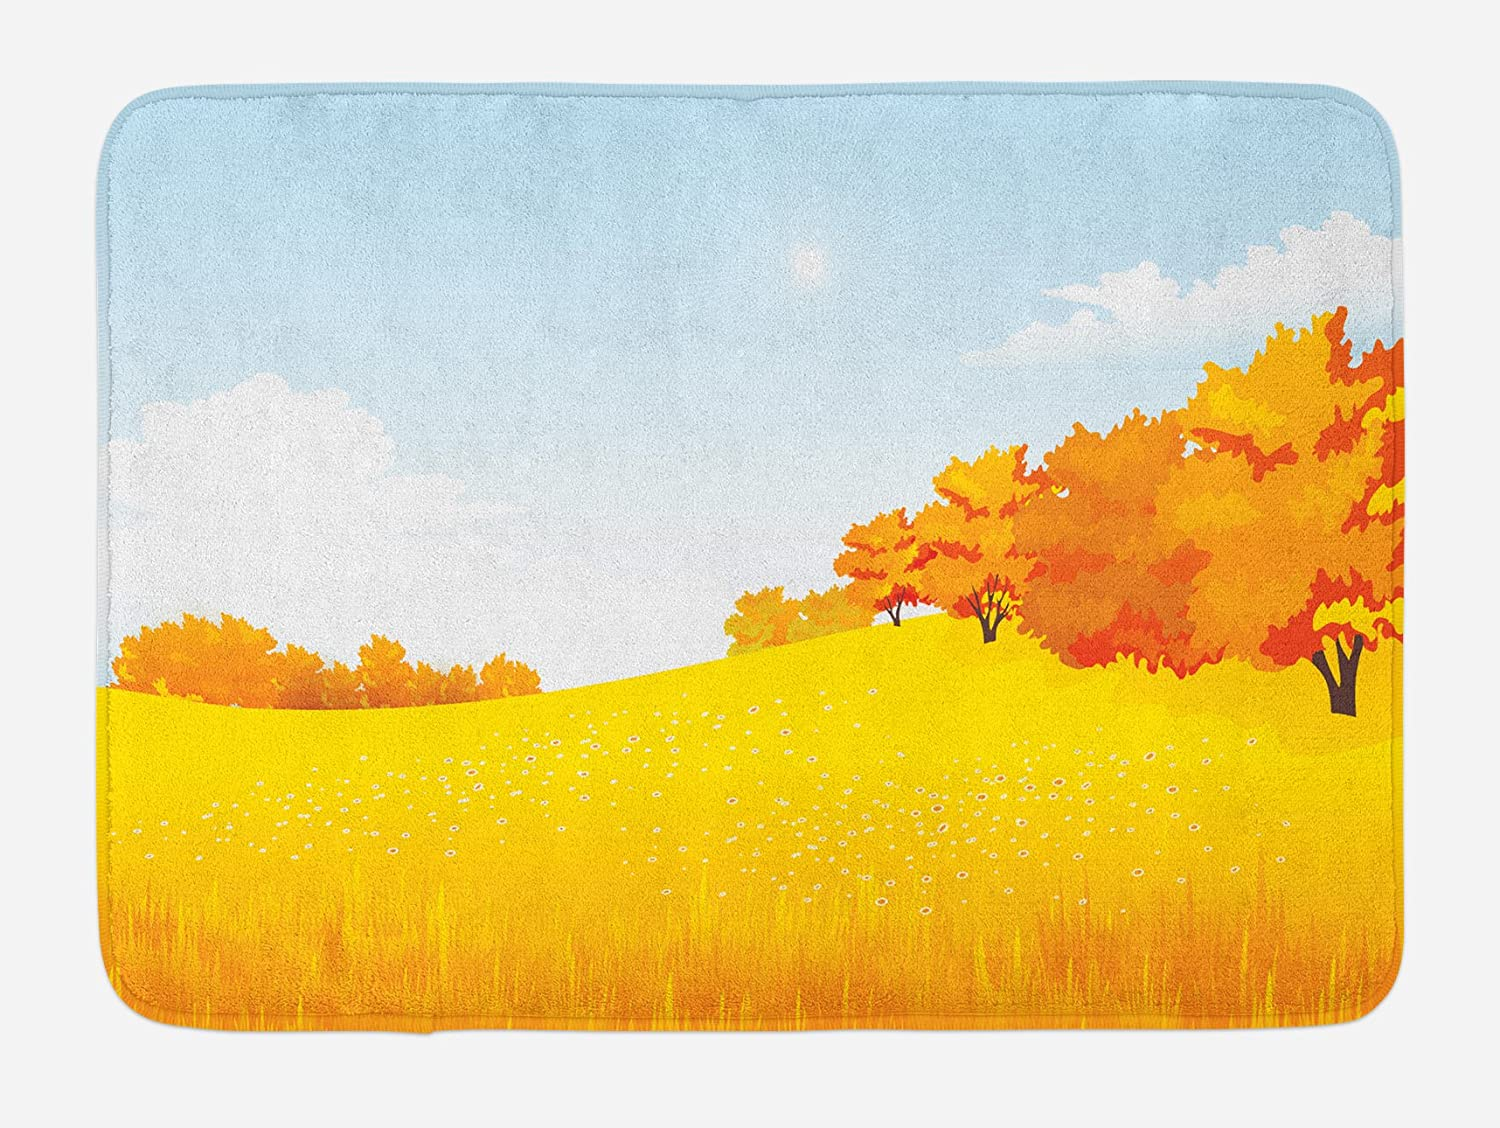 Lunarable Nature Bath Mat, Autumn Meadow Forest with Faded Tree Leaves Fall Season Serene Artwork, Plush Bathroom Decor Mat with Non Slip Backing, 29.5